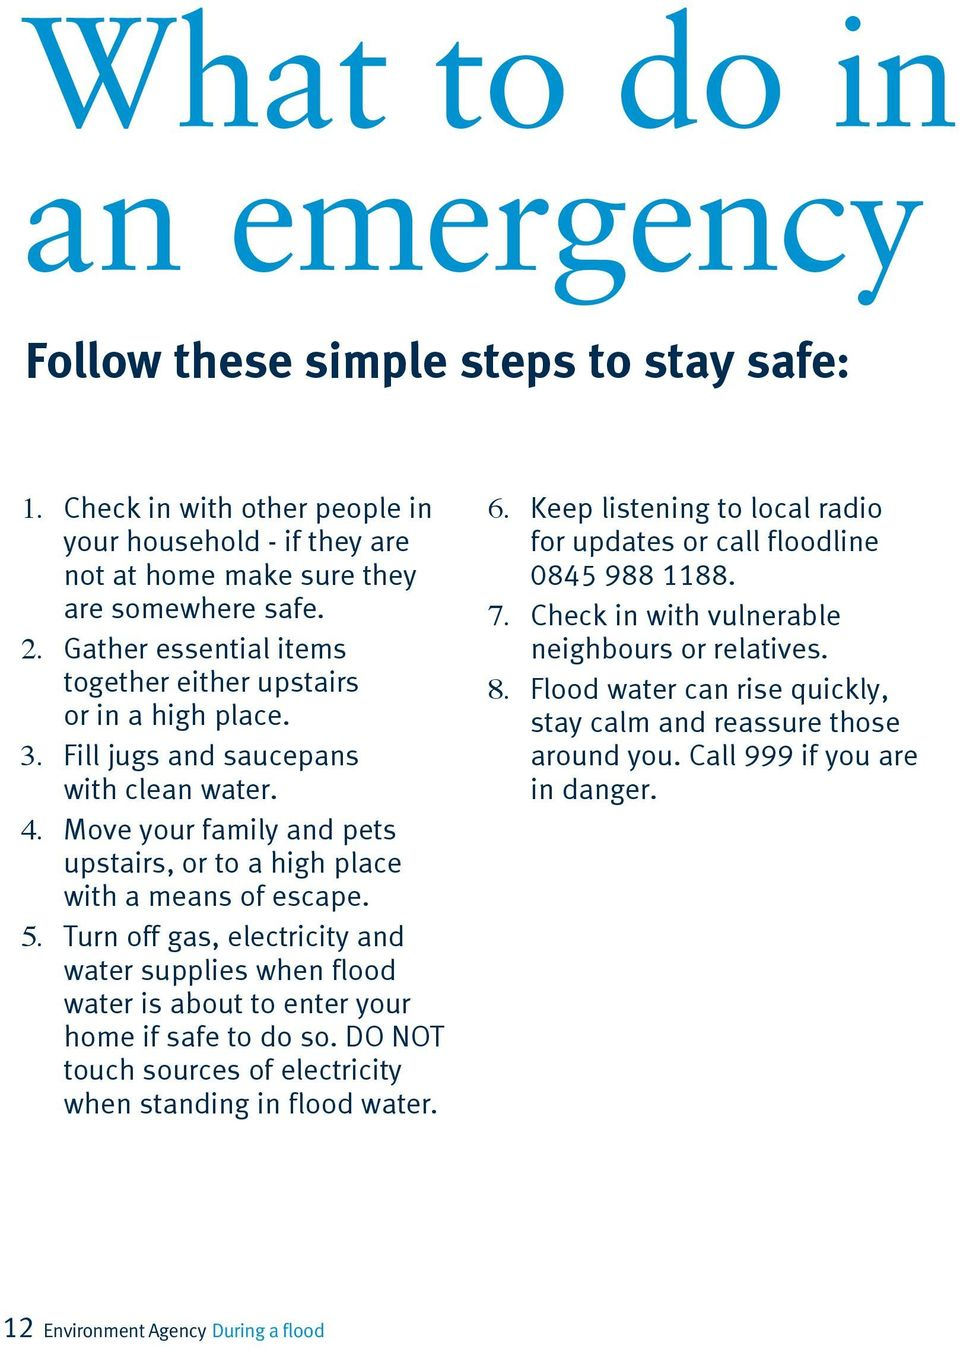 Turn off gas, electricity and water supplies when flood water is about to enter your home if safe to do so. DO NOT touch sources of electricity when standing in flood water. 6.